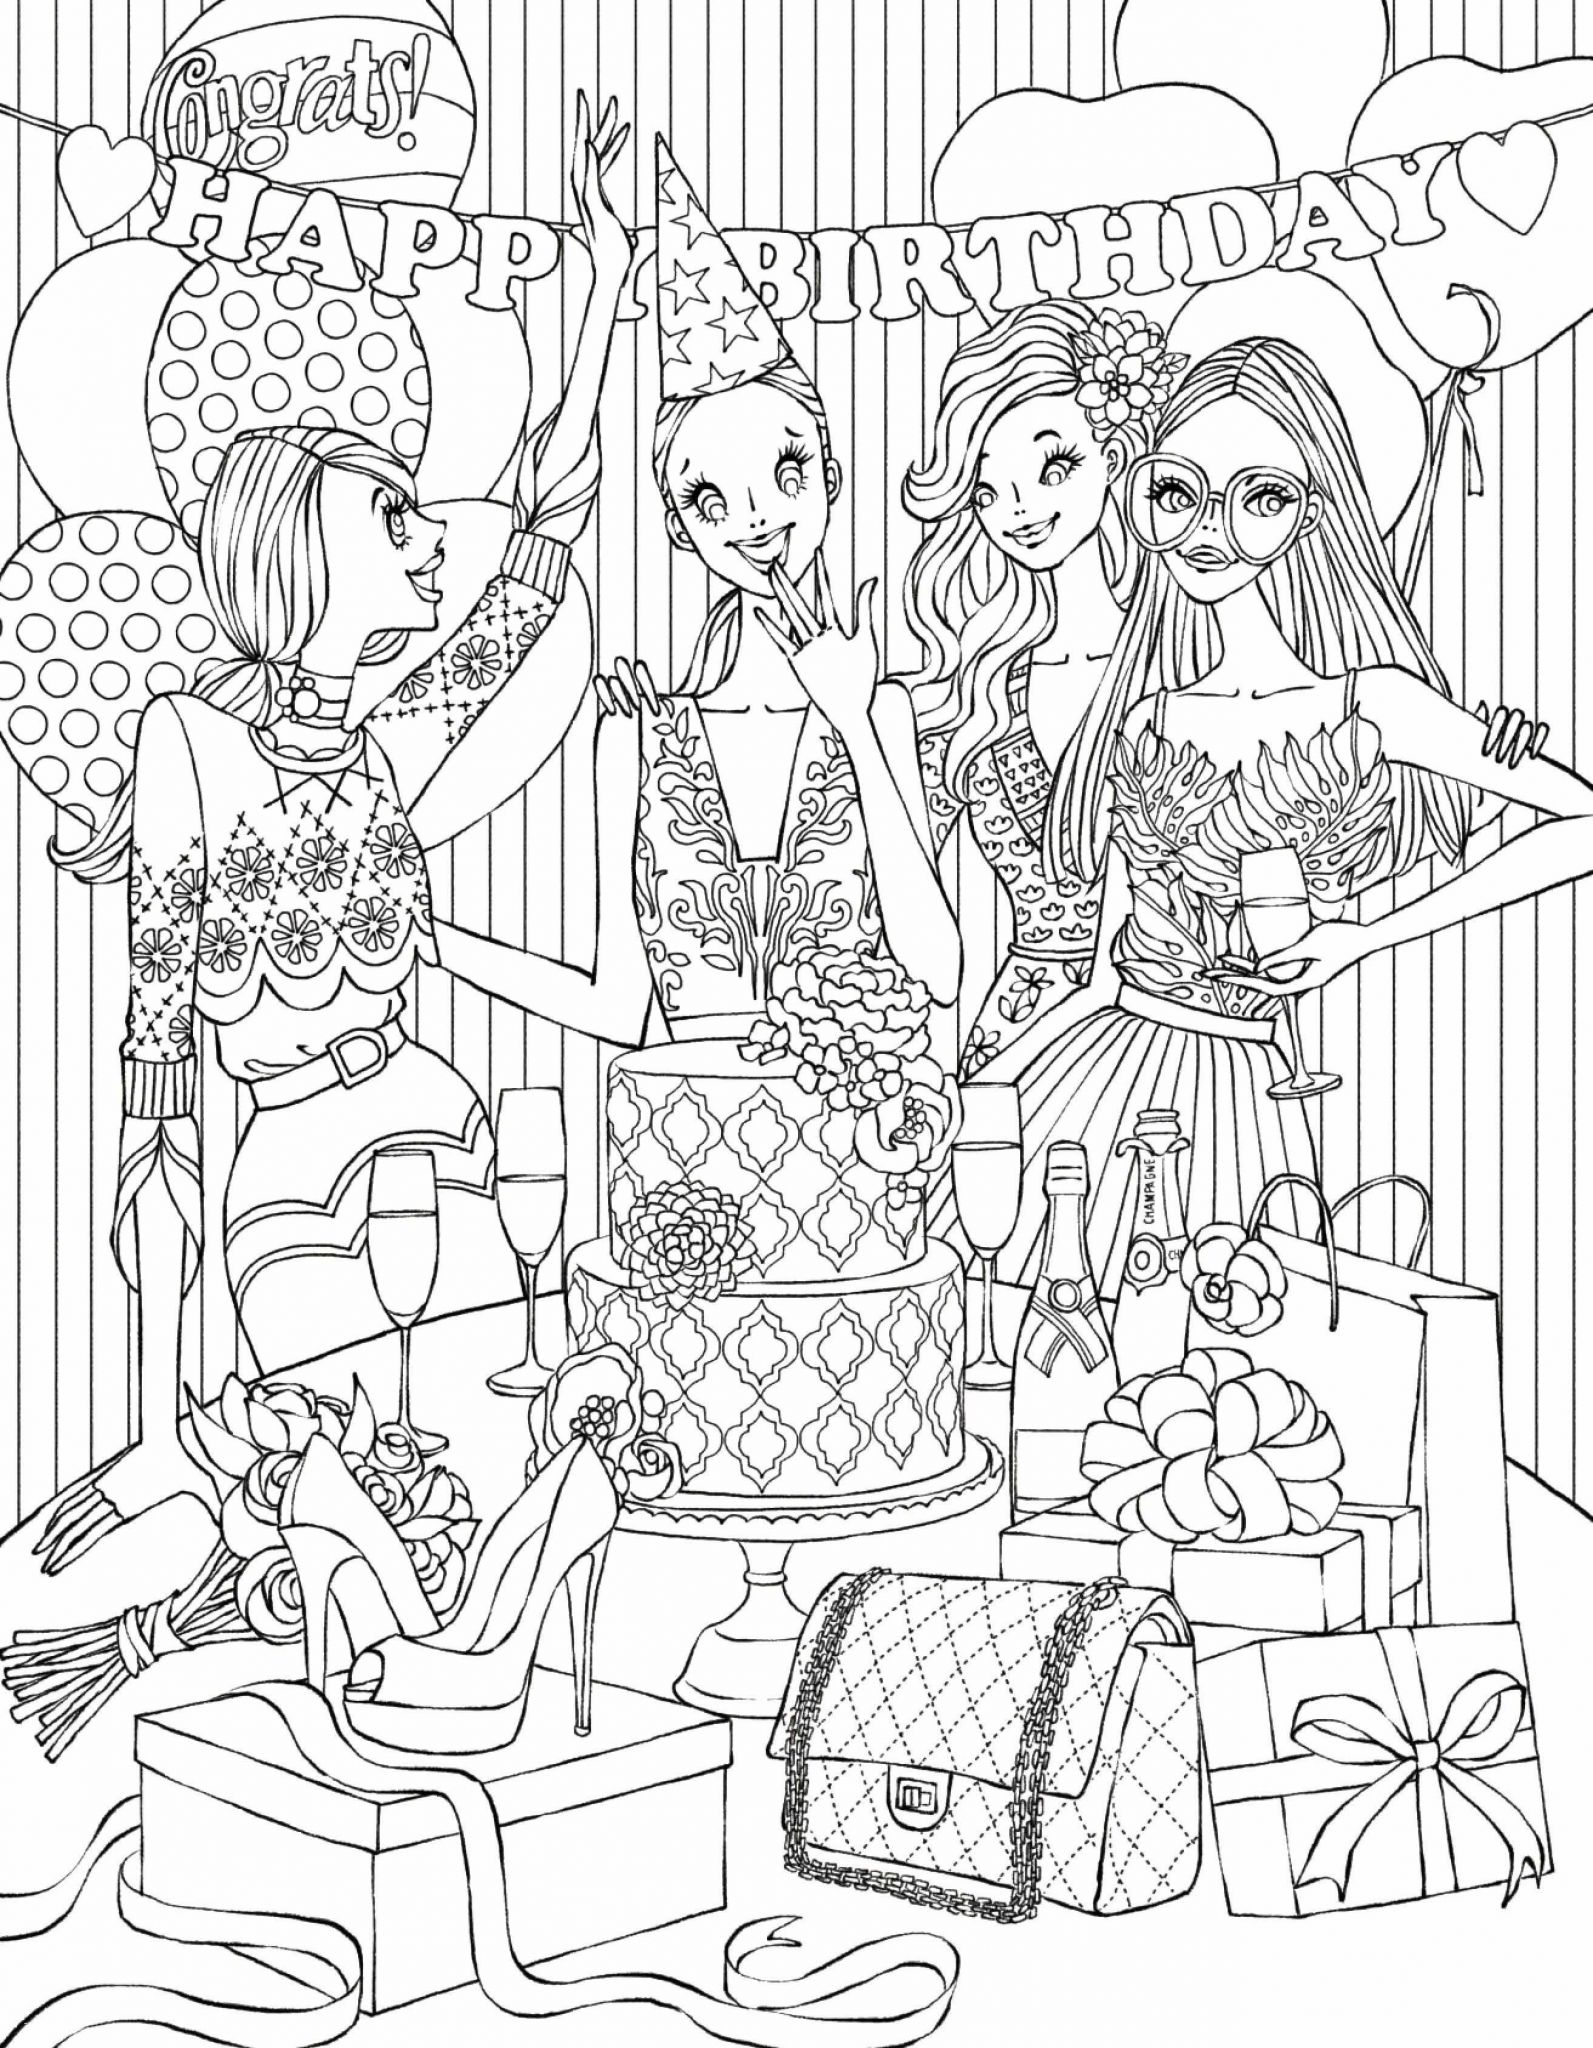 Coloring Worksheets for Preschool with Kindergarten Coloring Pages Luxury Printable Colering Beautiful